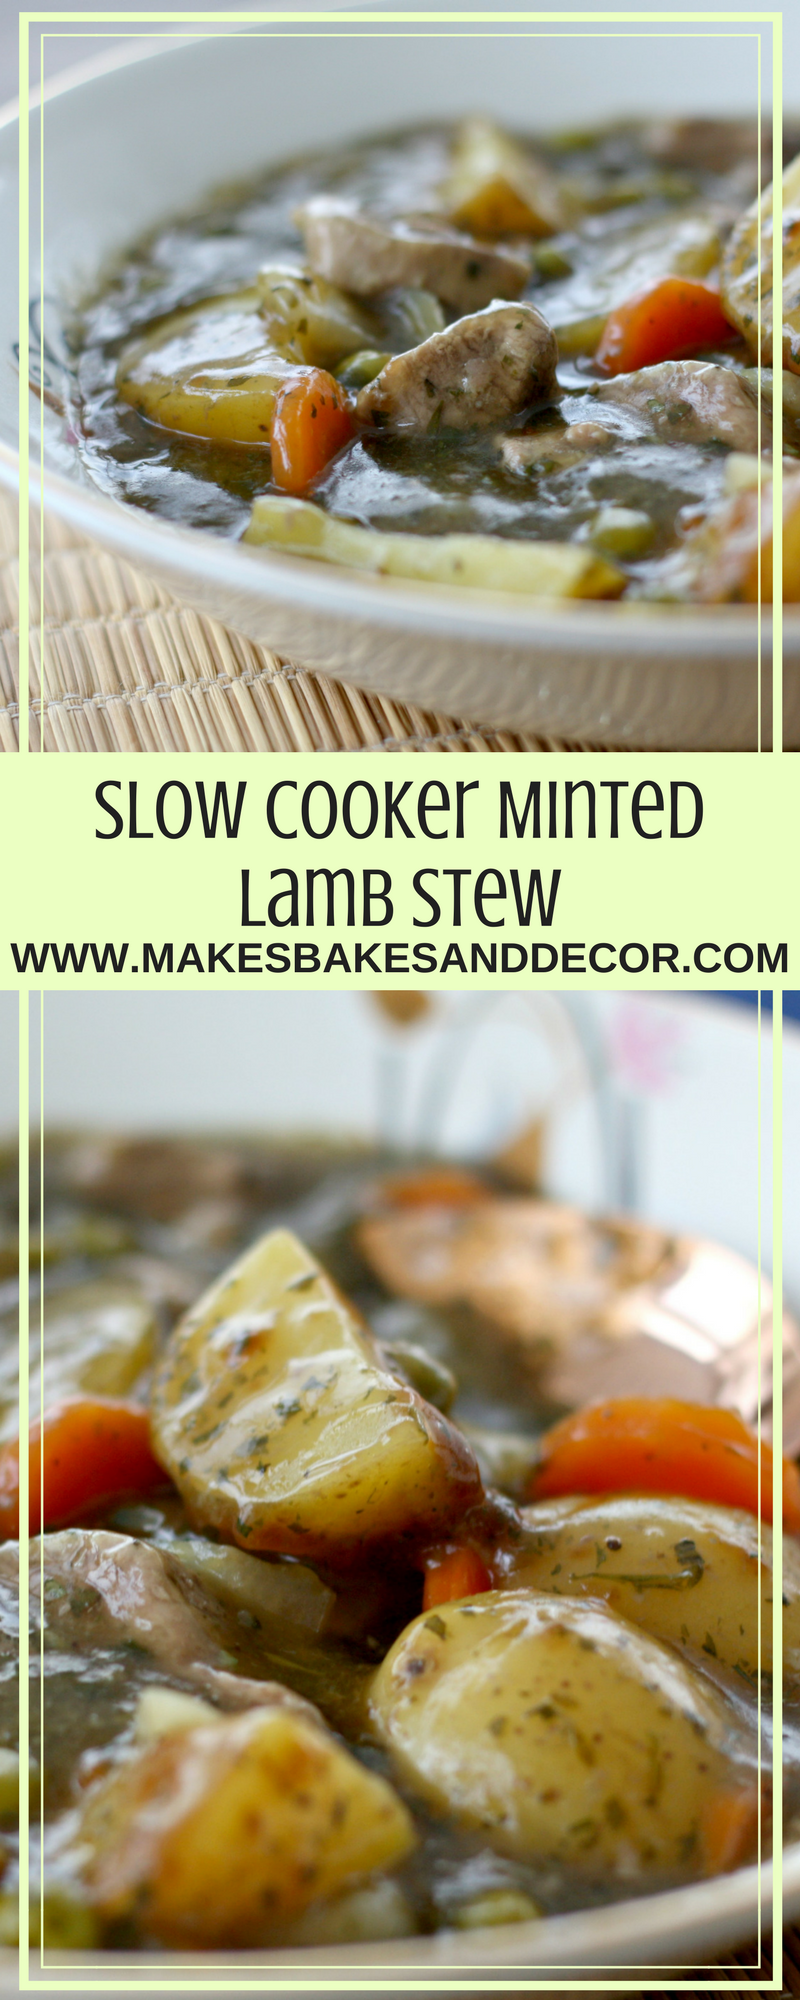 Slow Cooker Minted Lamb Stew